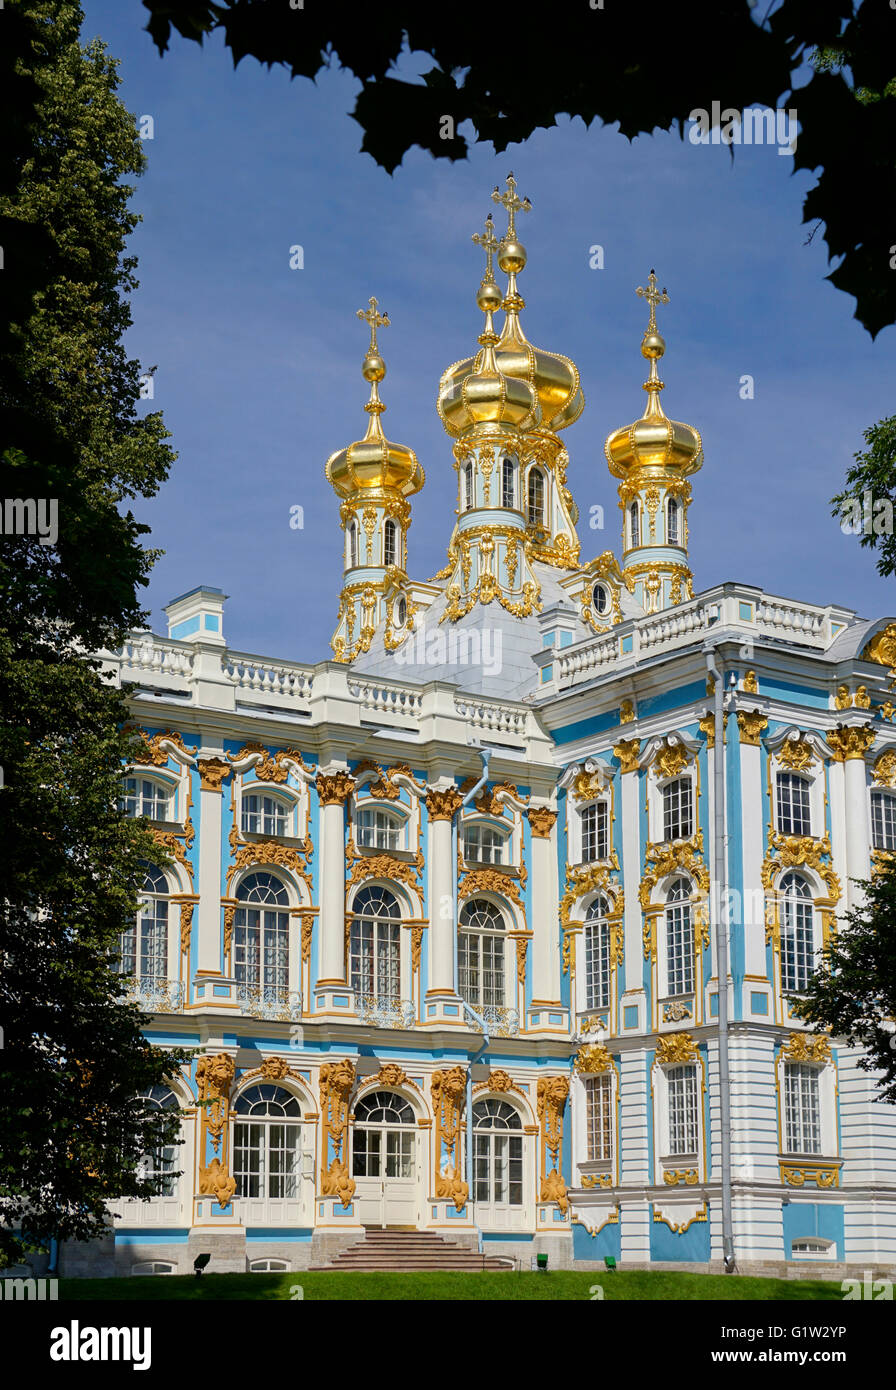 Catherine's Palace at Pushkin in St. Petersburg, Russia. - Stock Image